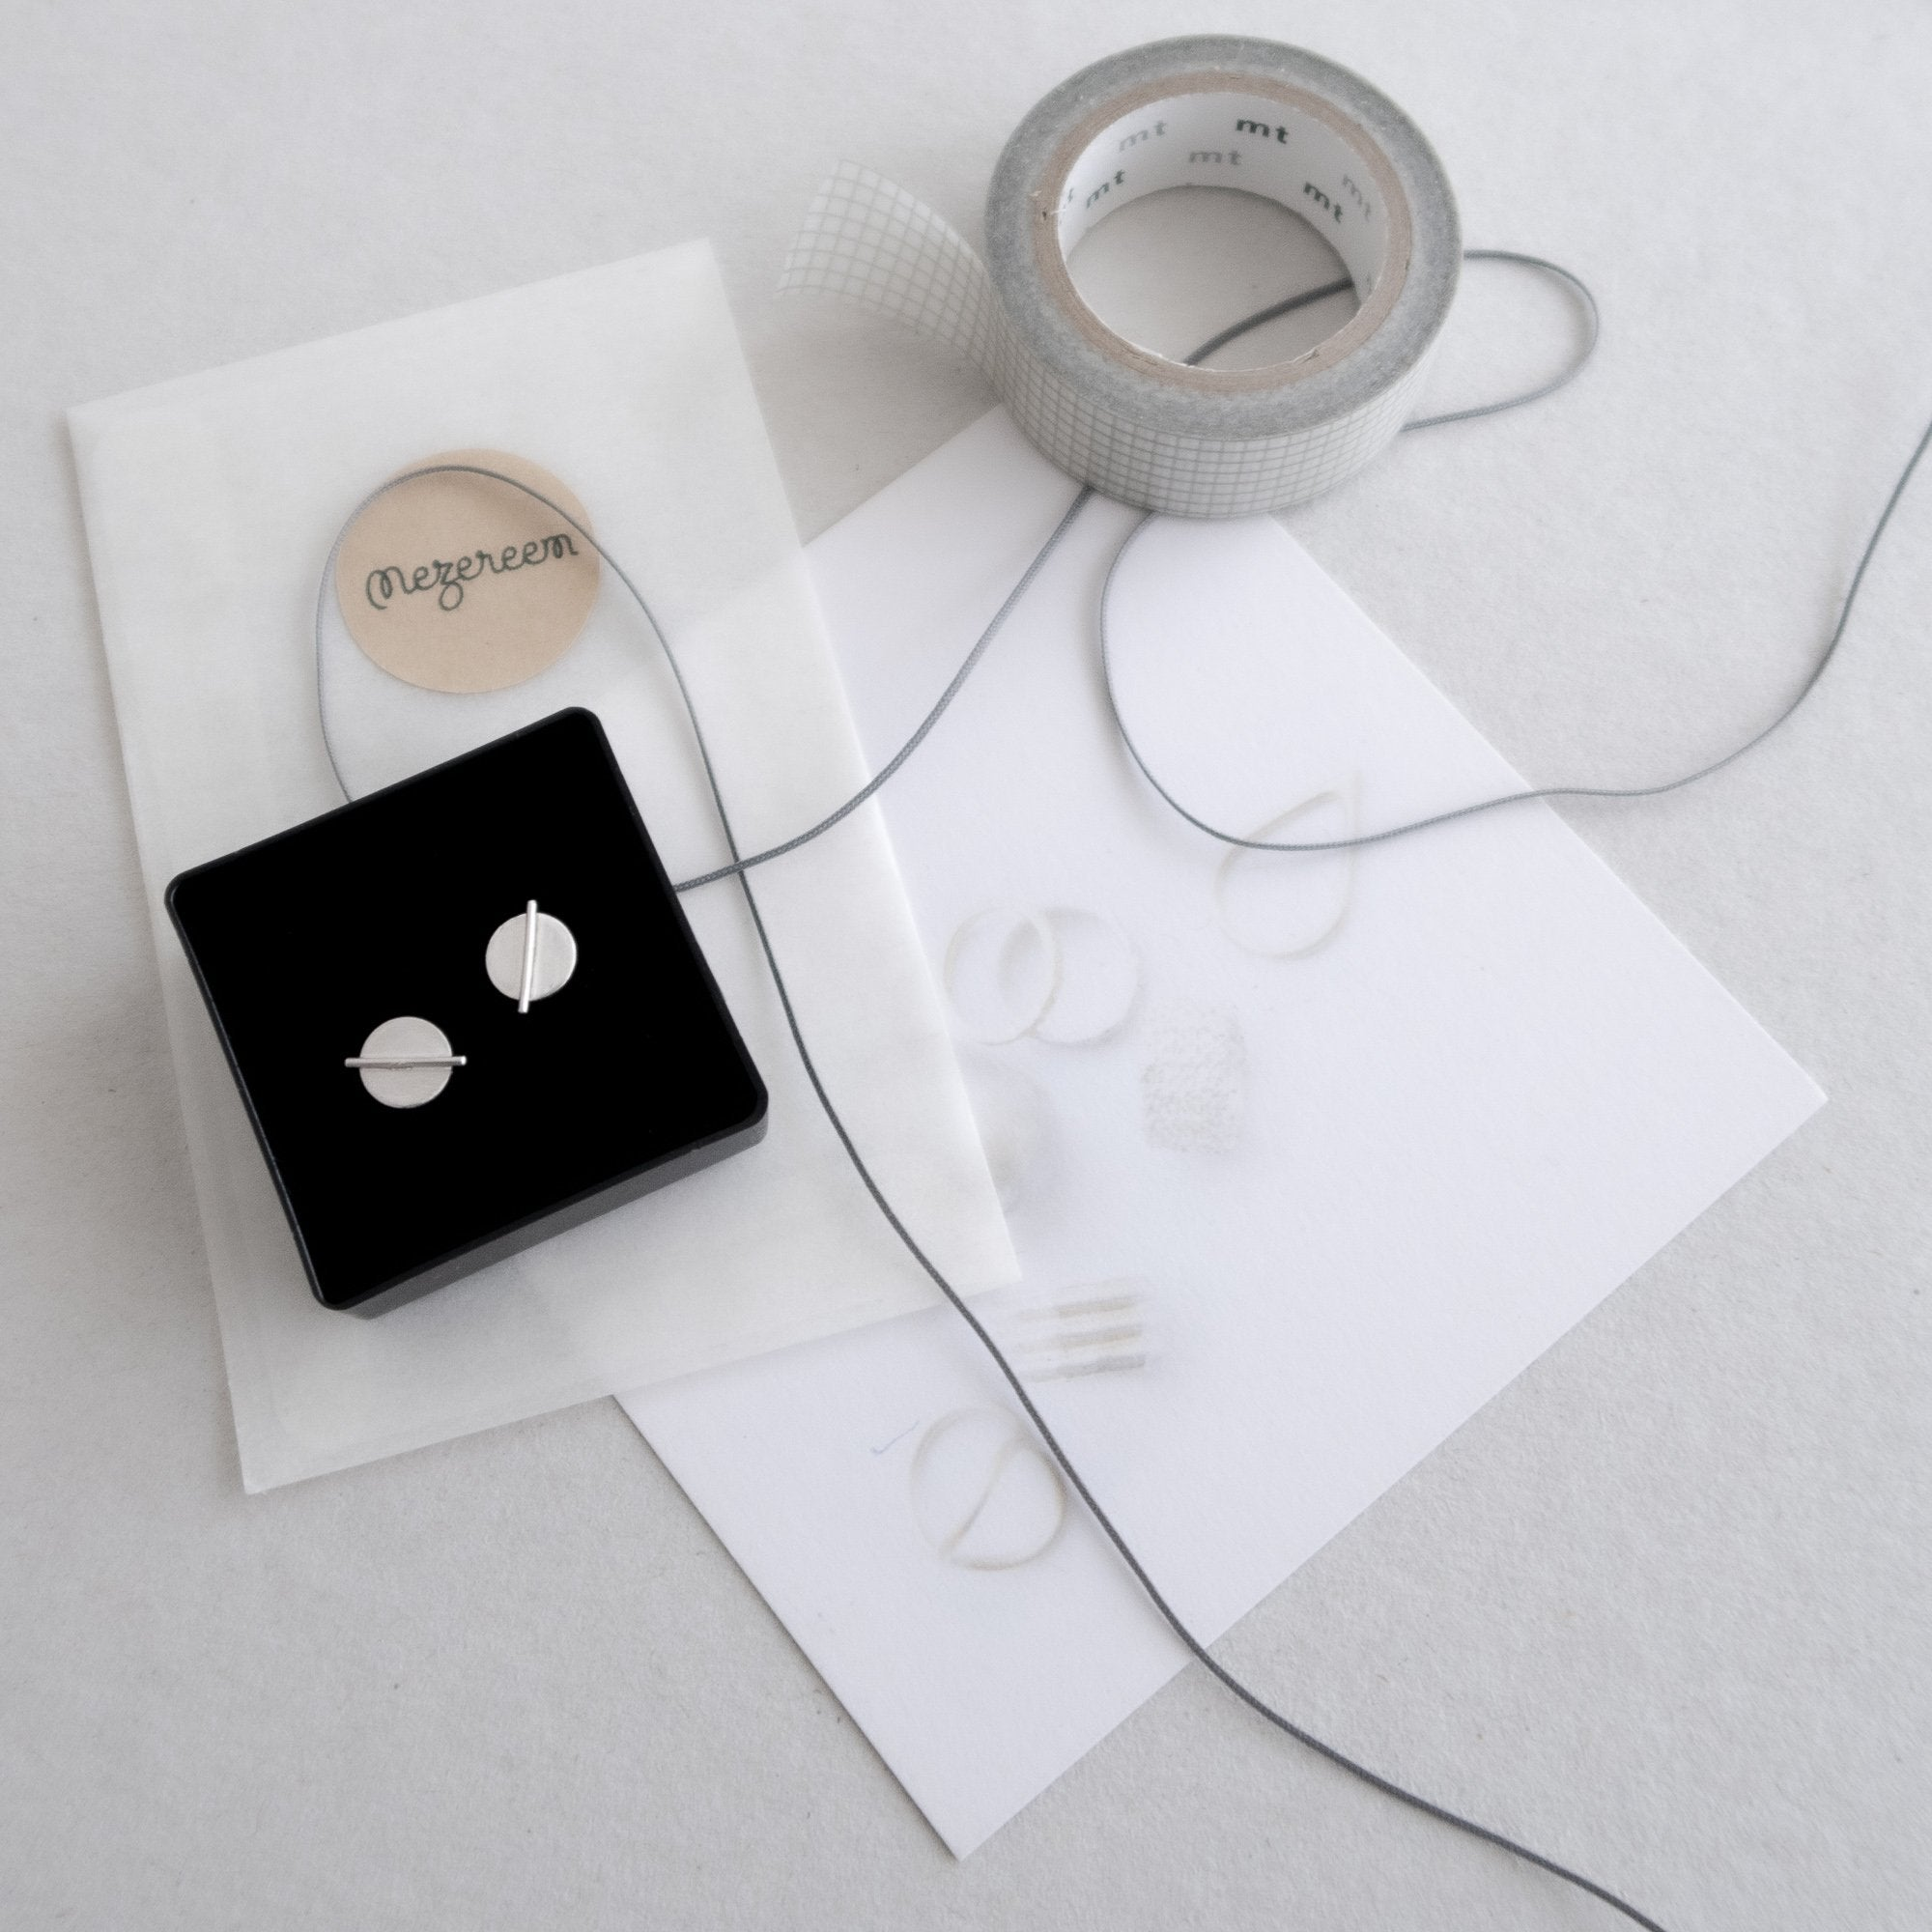 packaging example mezereem jewelry